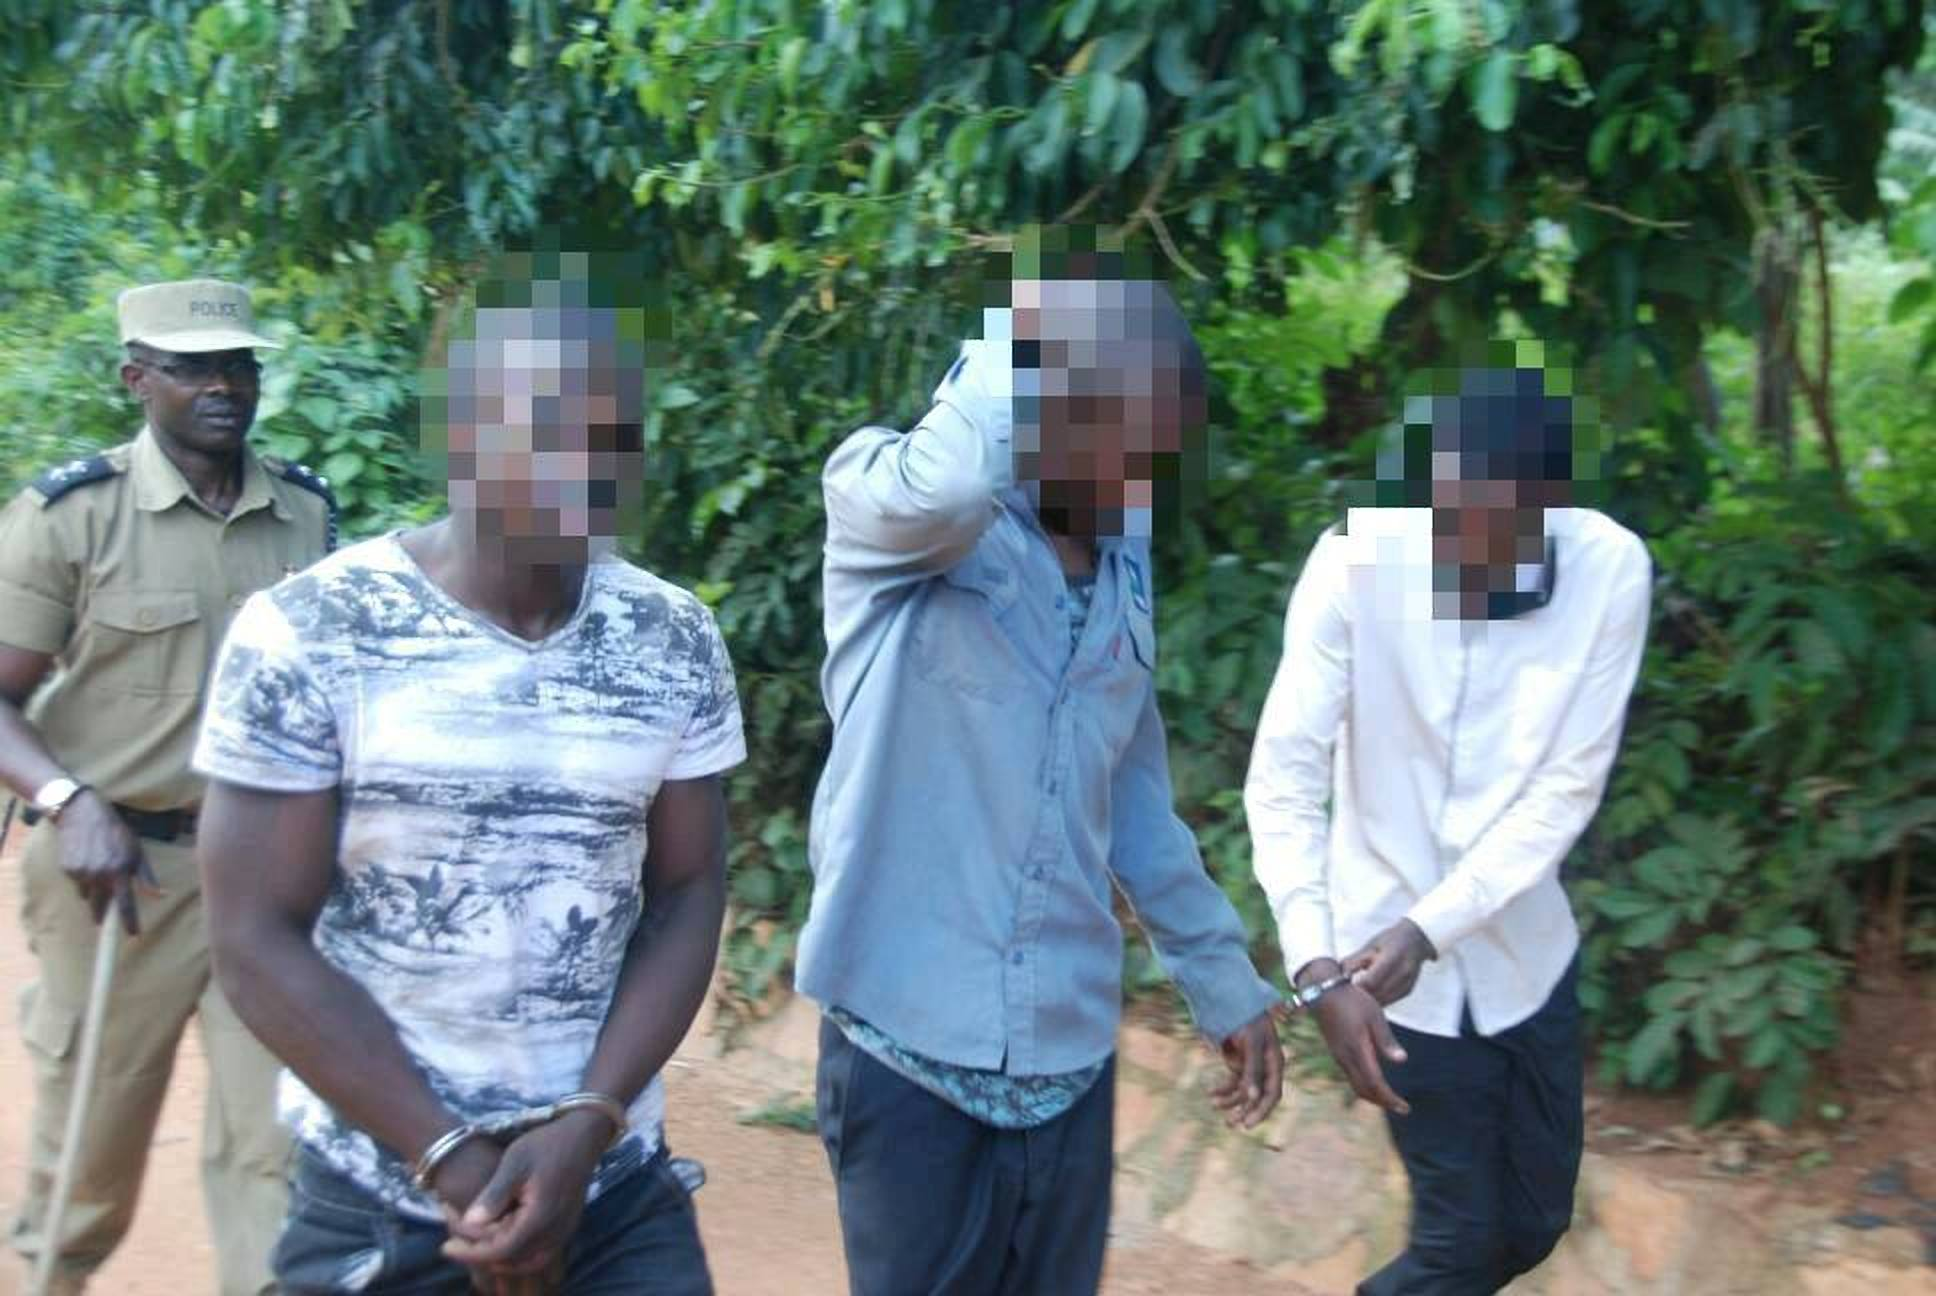 The notorious thugs arrested have terrorised residents with regular break-ins and theft (COURTESY PHOTO)